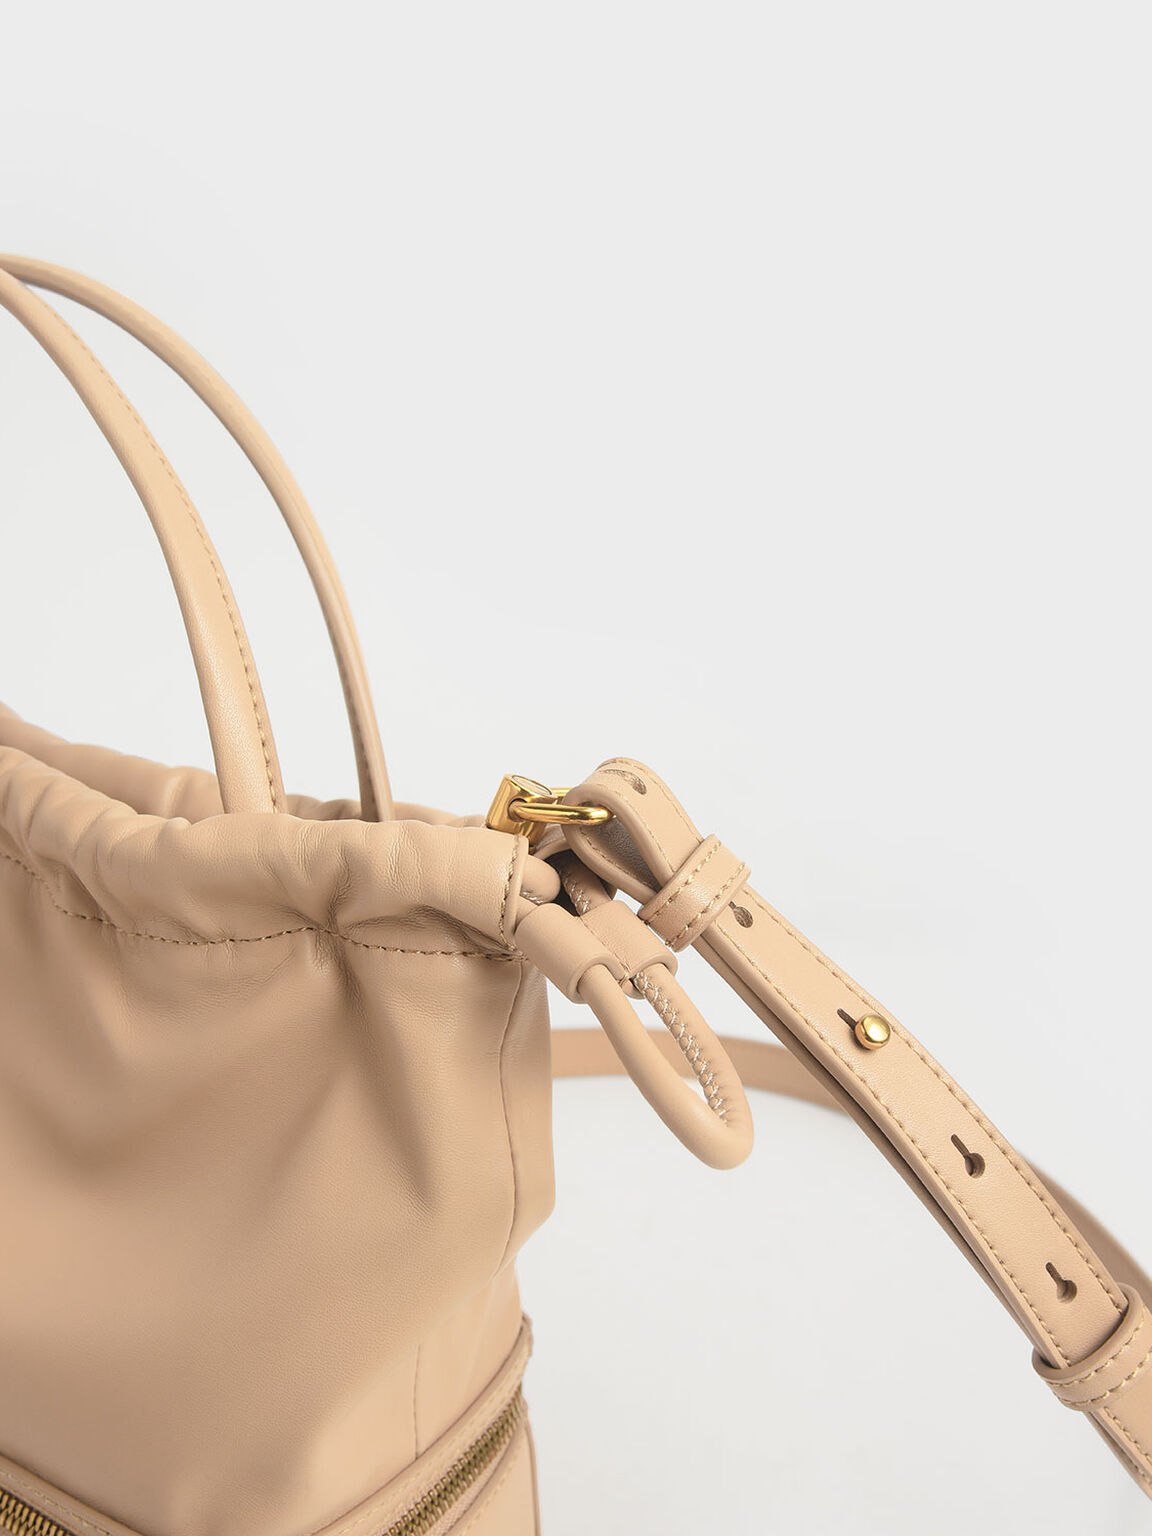 Two-Way Zip Drawstring Bag, Beige, hi-res